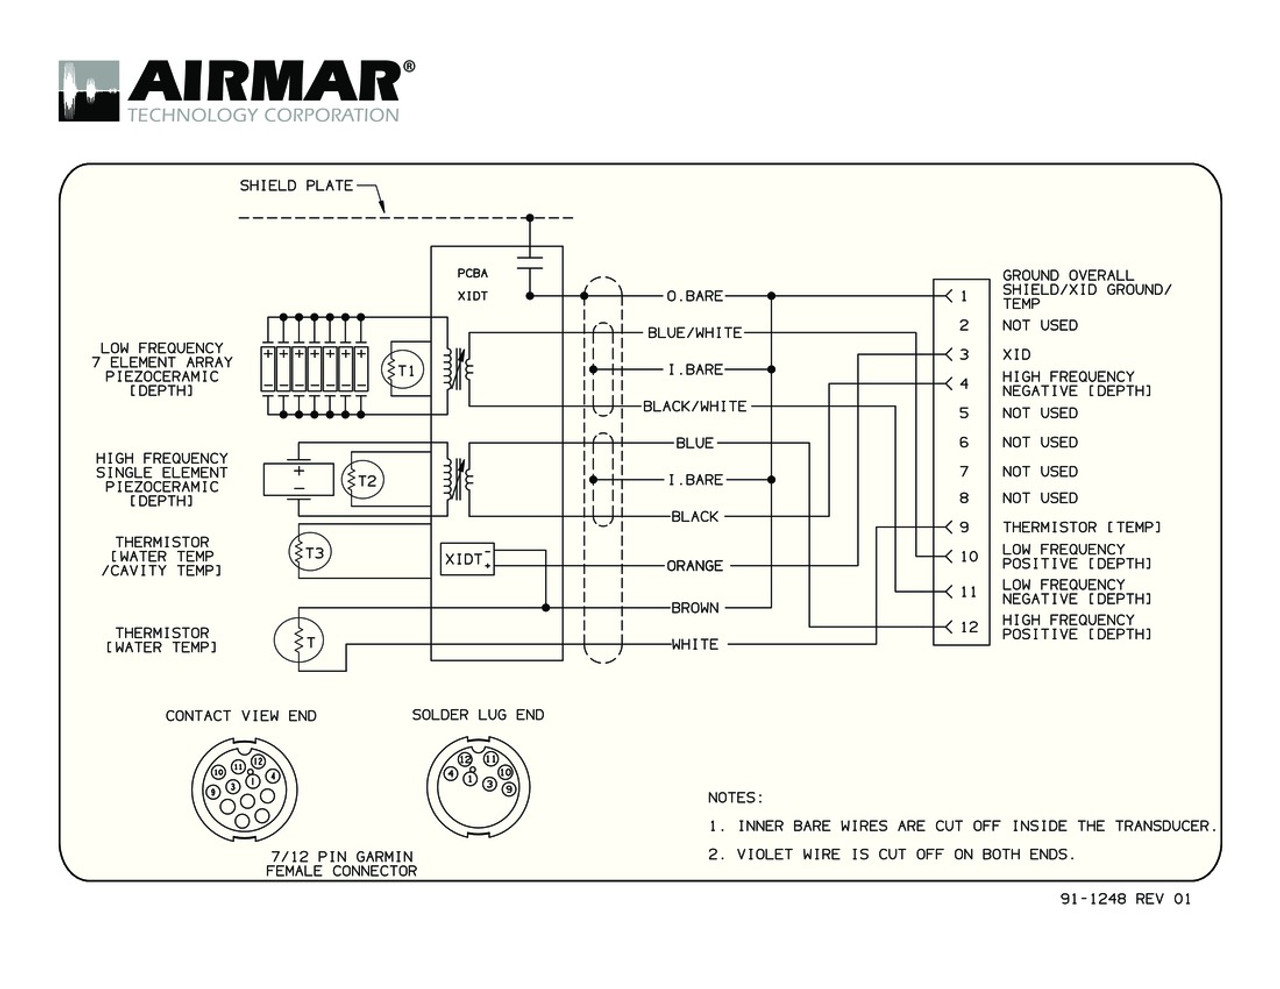 Garmin Wiring Rj45 Connector Explained Wiring Diagrams 91 1248 48561 Garmin  Wiring Rj45 Connectorhtml